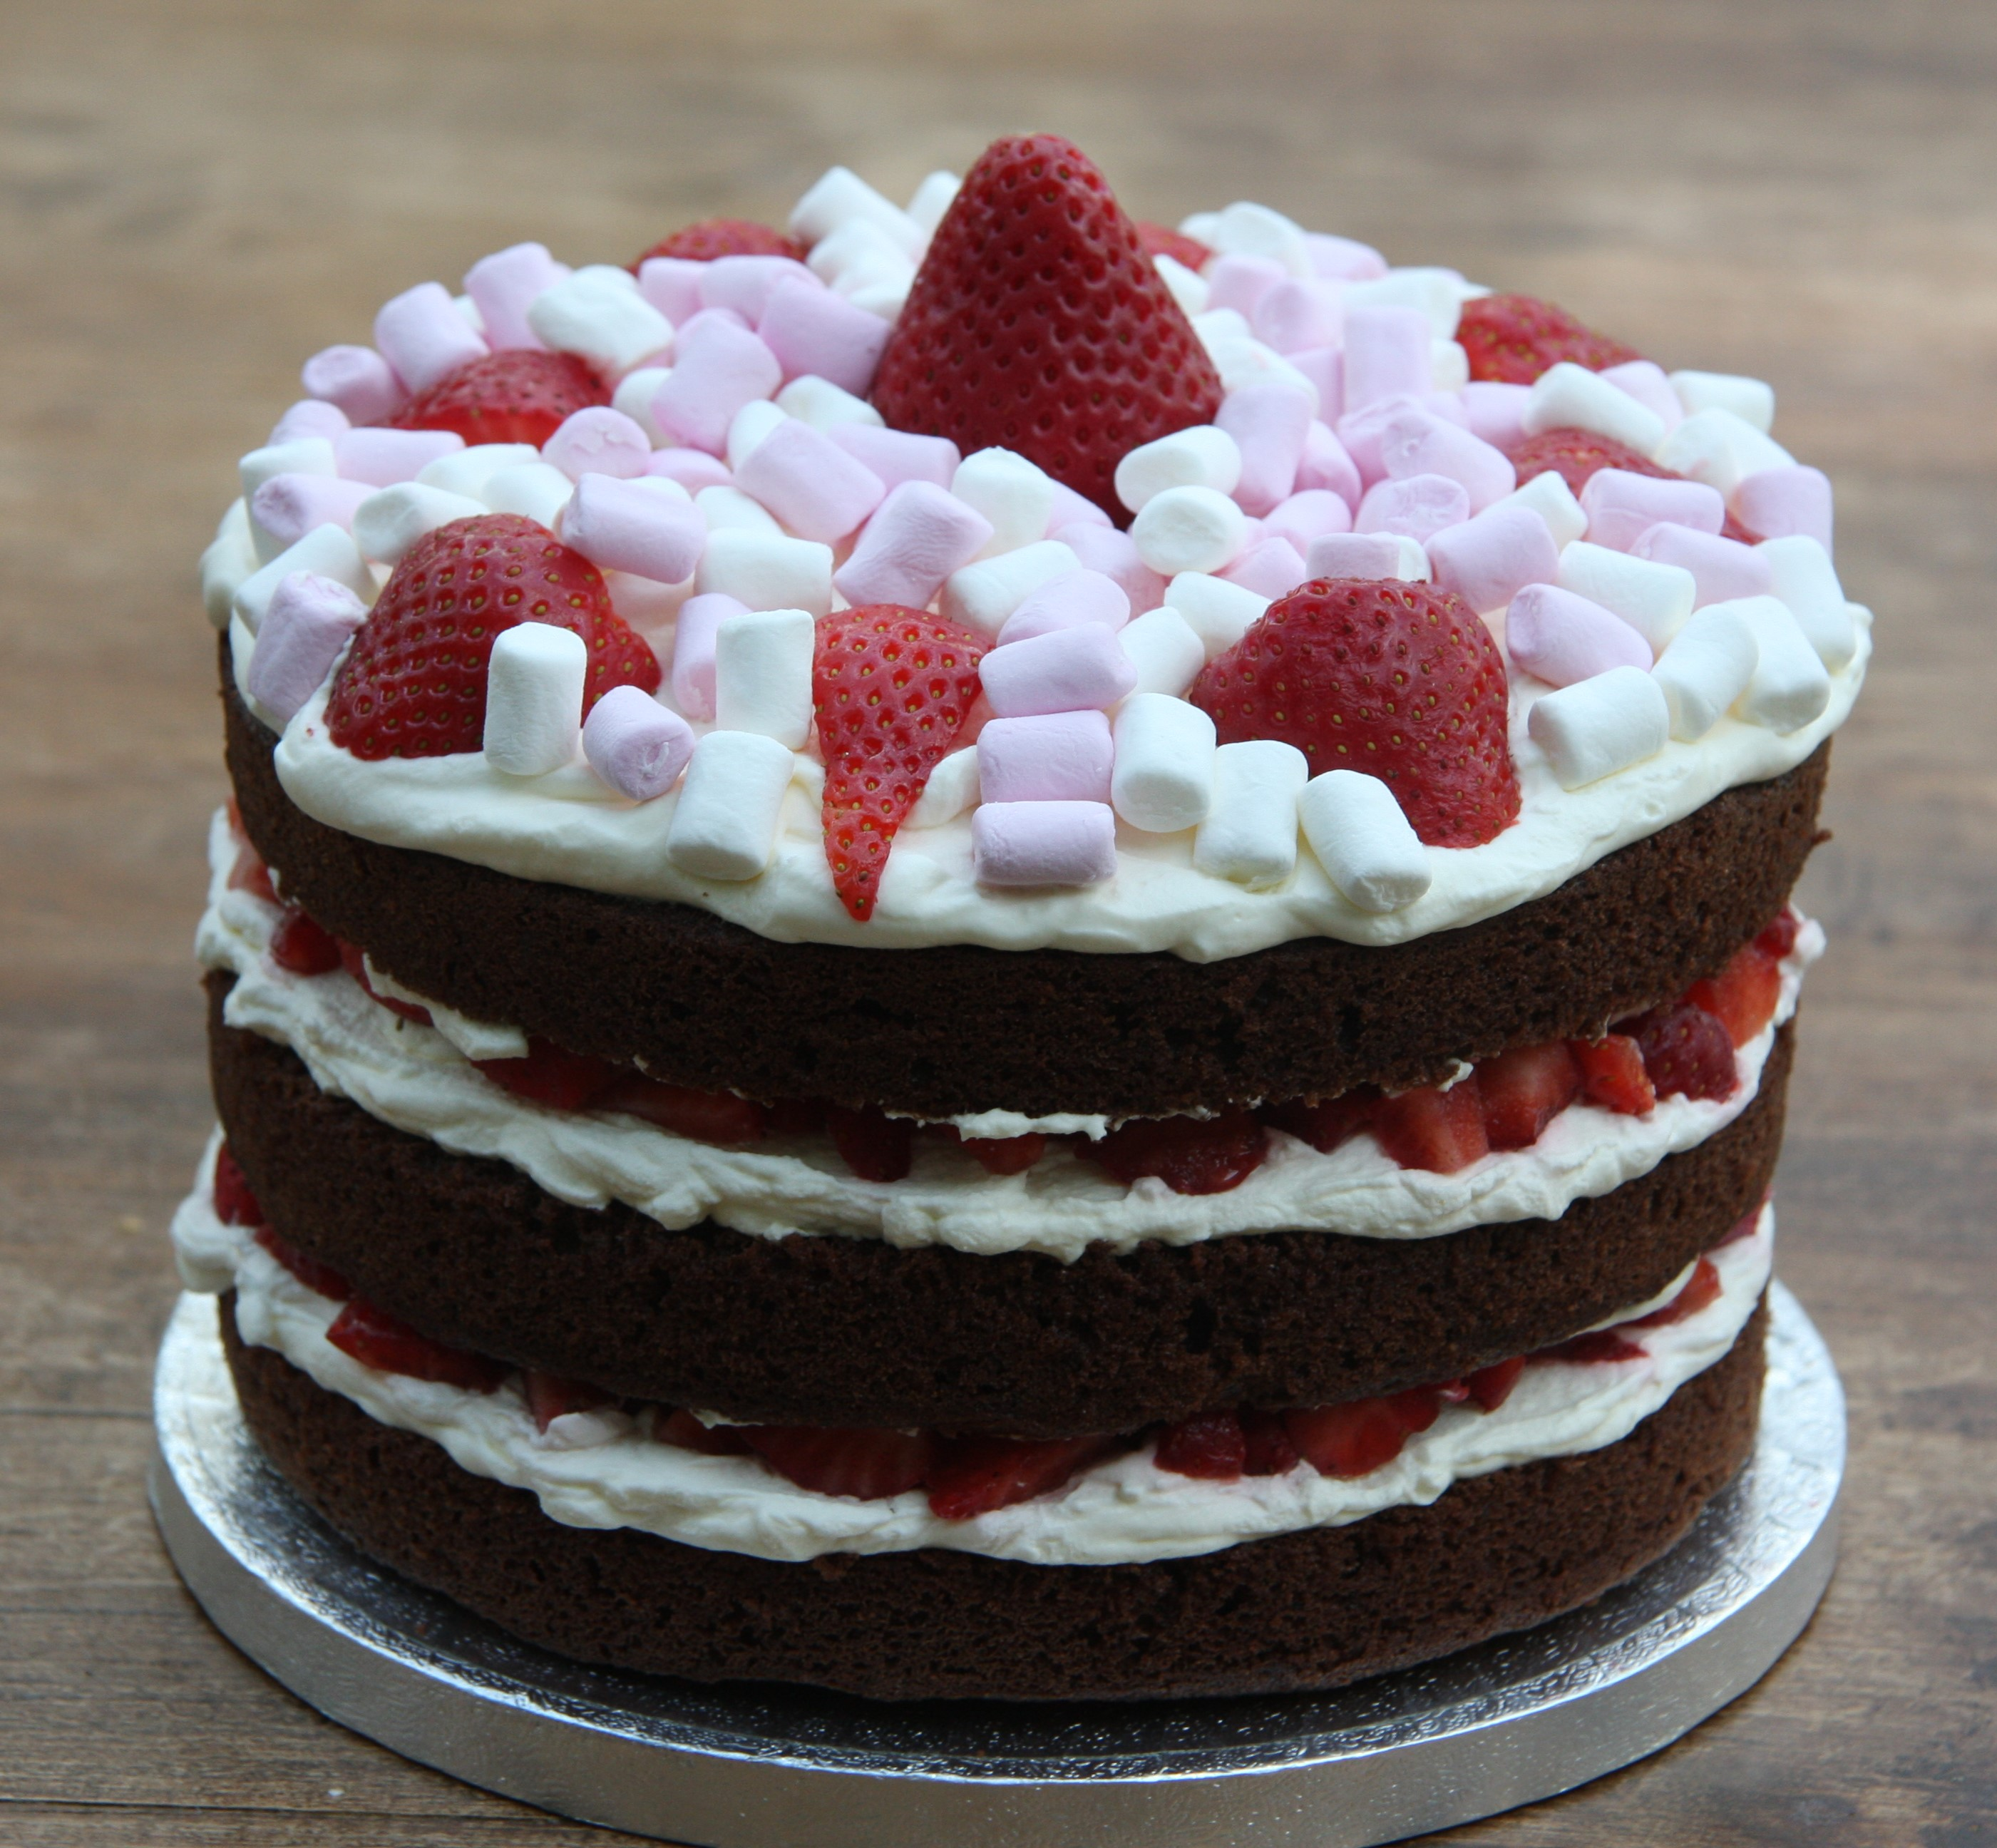 Astonishing Chocolate Birthday Cake With Strawberries And Cream And New Funny Birthday Cards Online Overcheapnameinfo